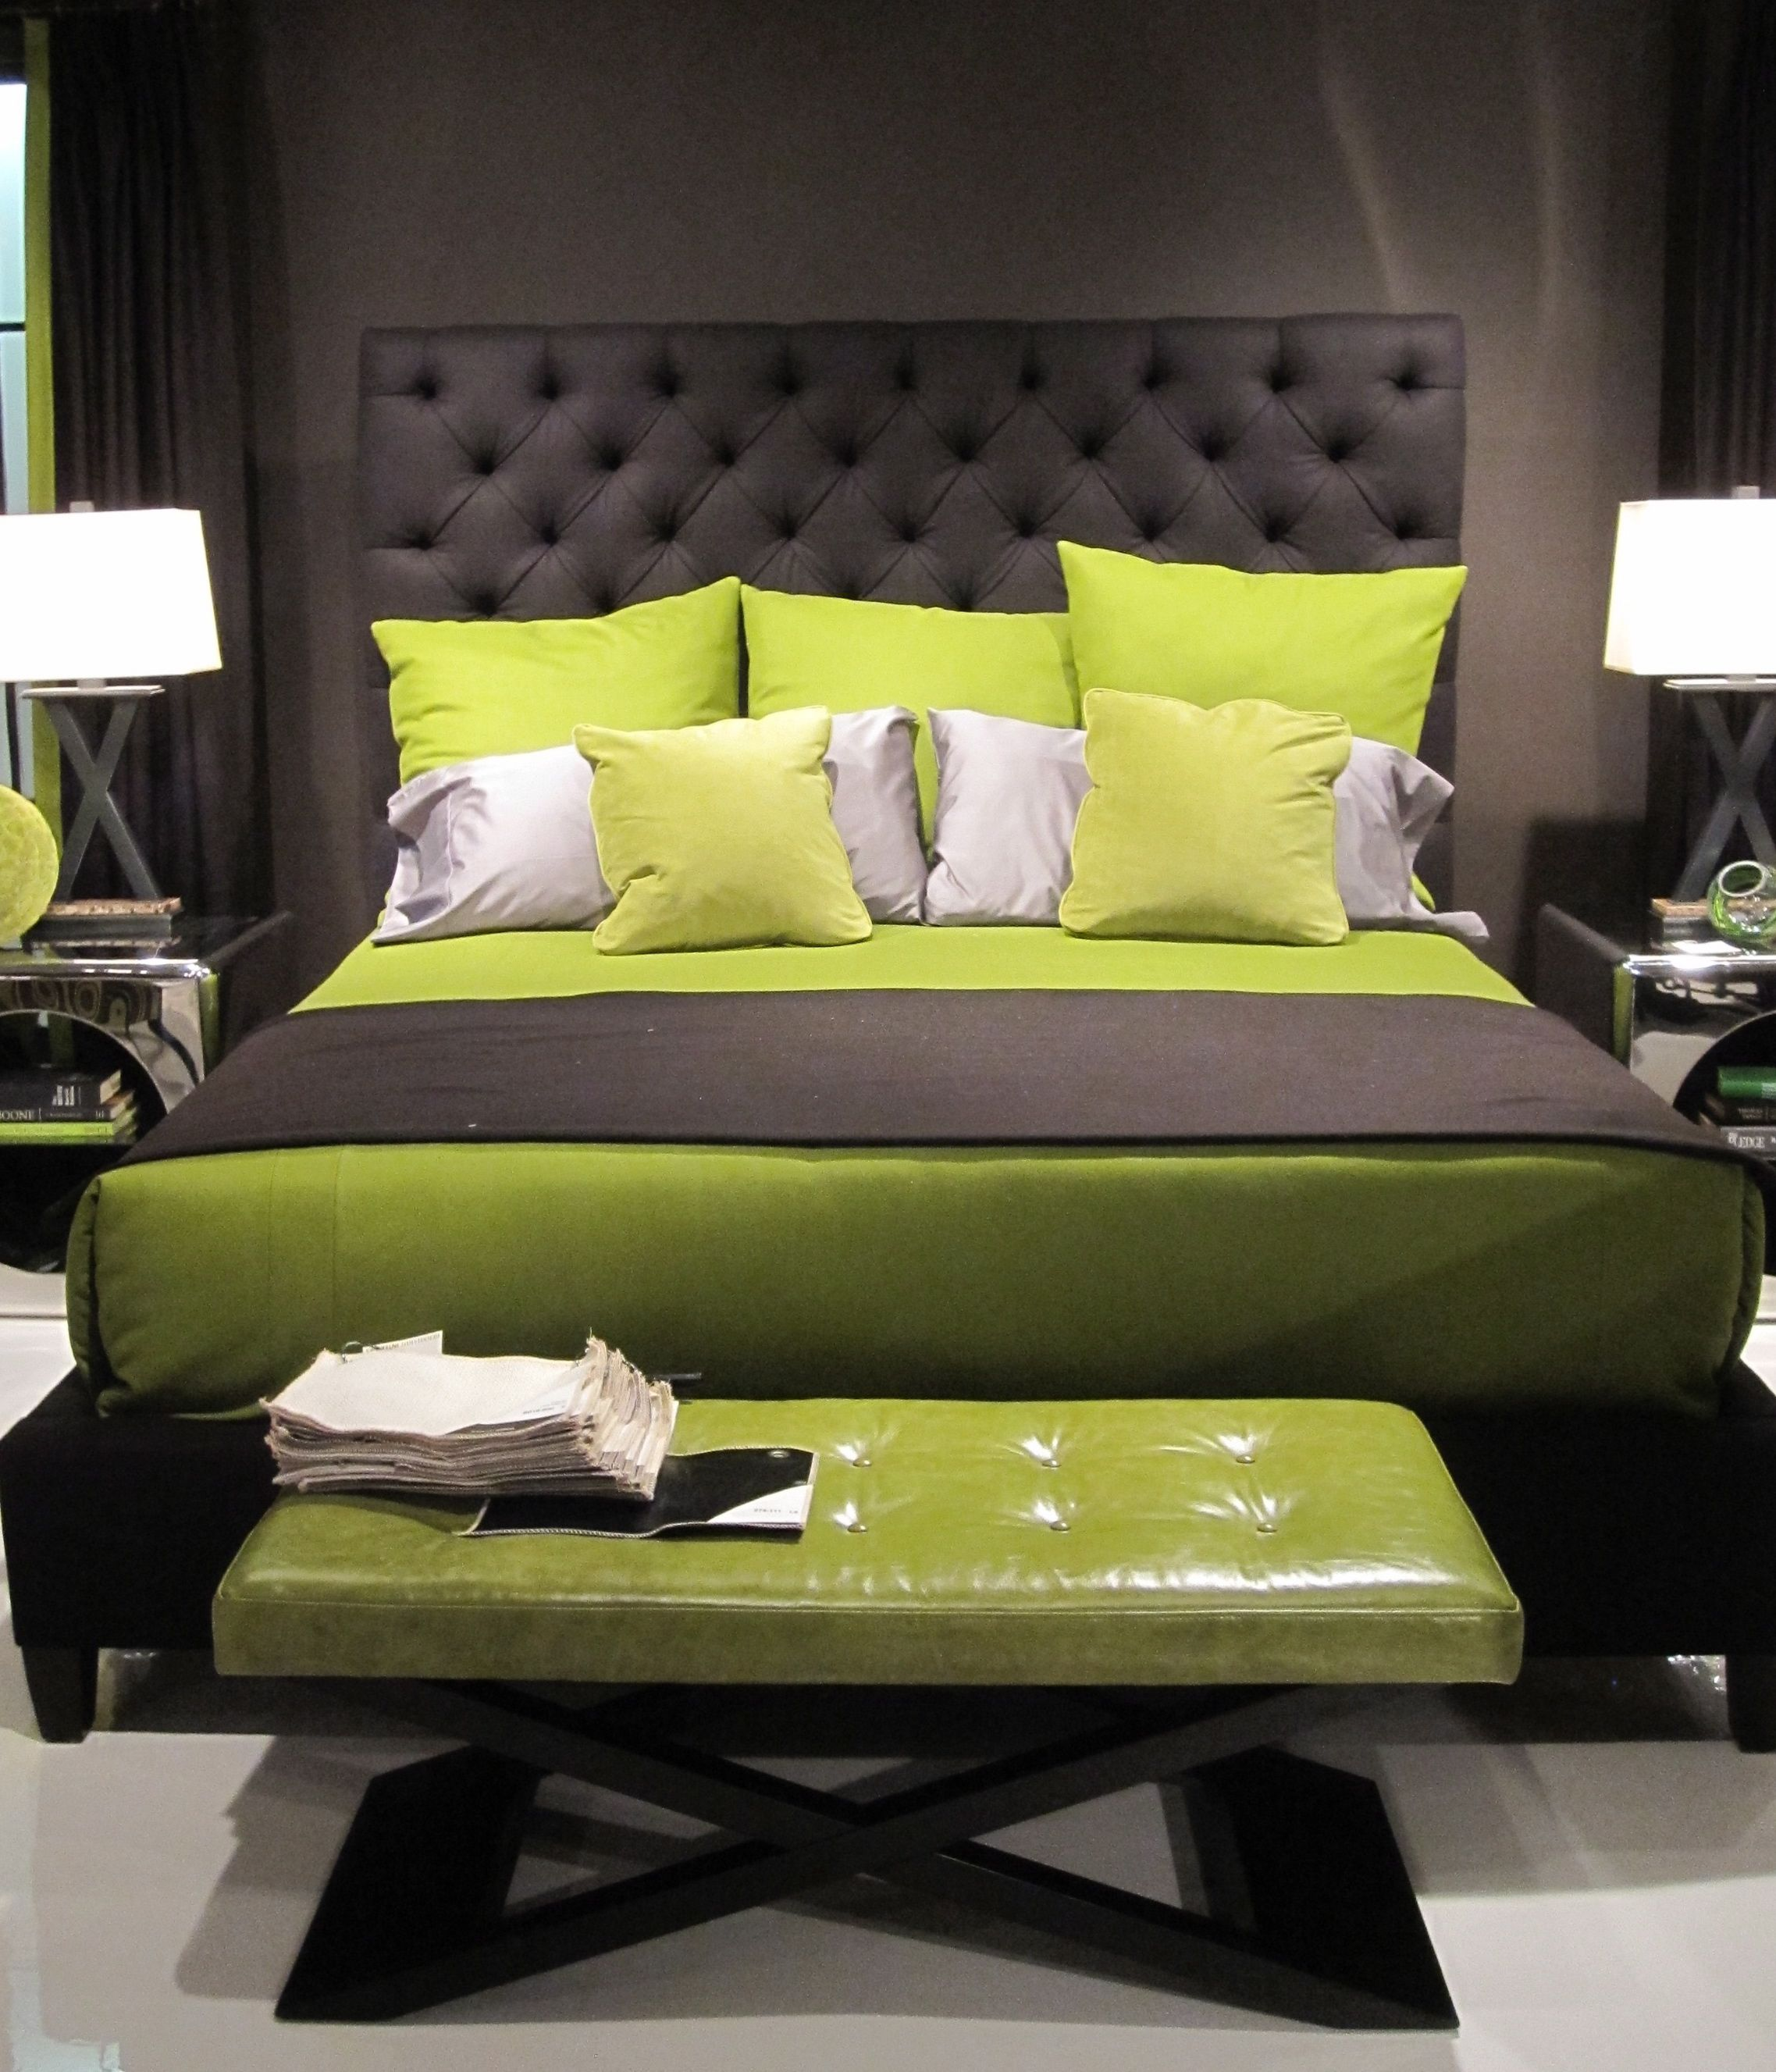 upholstered gray bed styled with greens and stainless accent